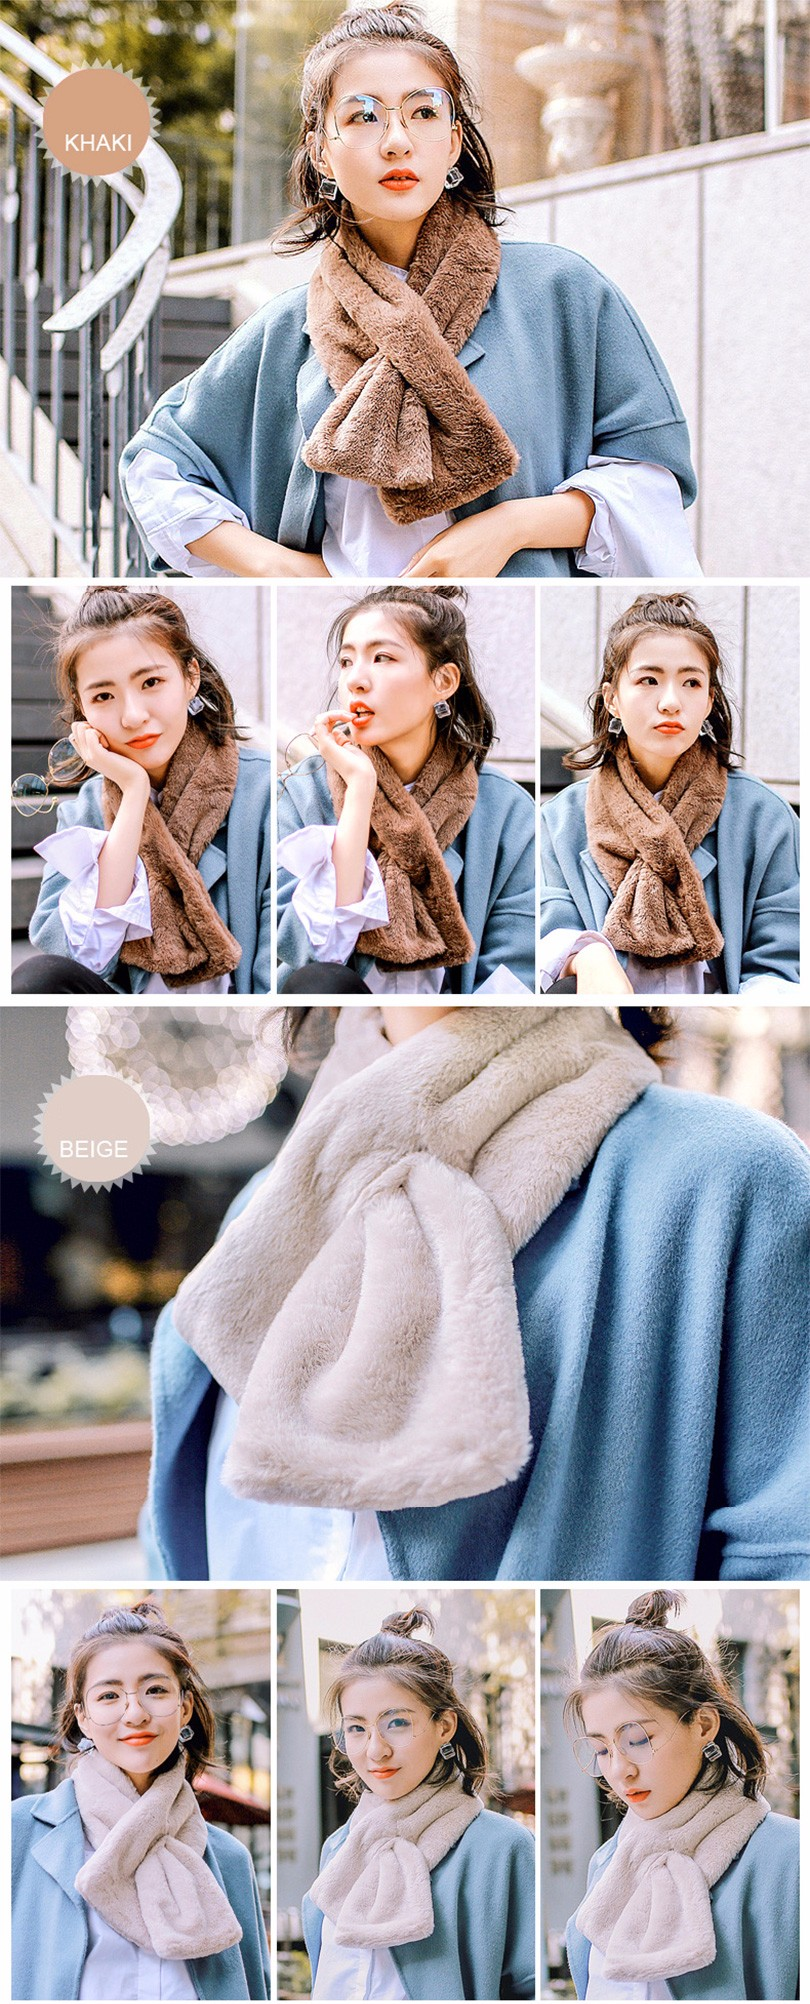 Fashion Woman scarf from Indian Wrap Shawl Women Scarves Solid Scarf Winter Warmth Soft Wrap Shawl Scarves Novelty